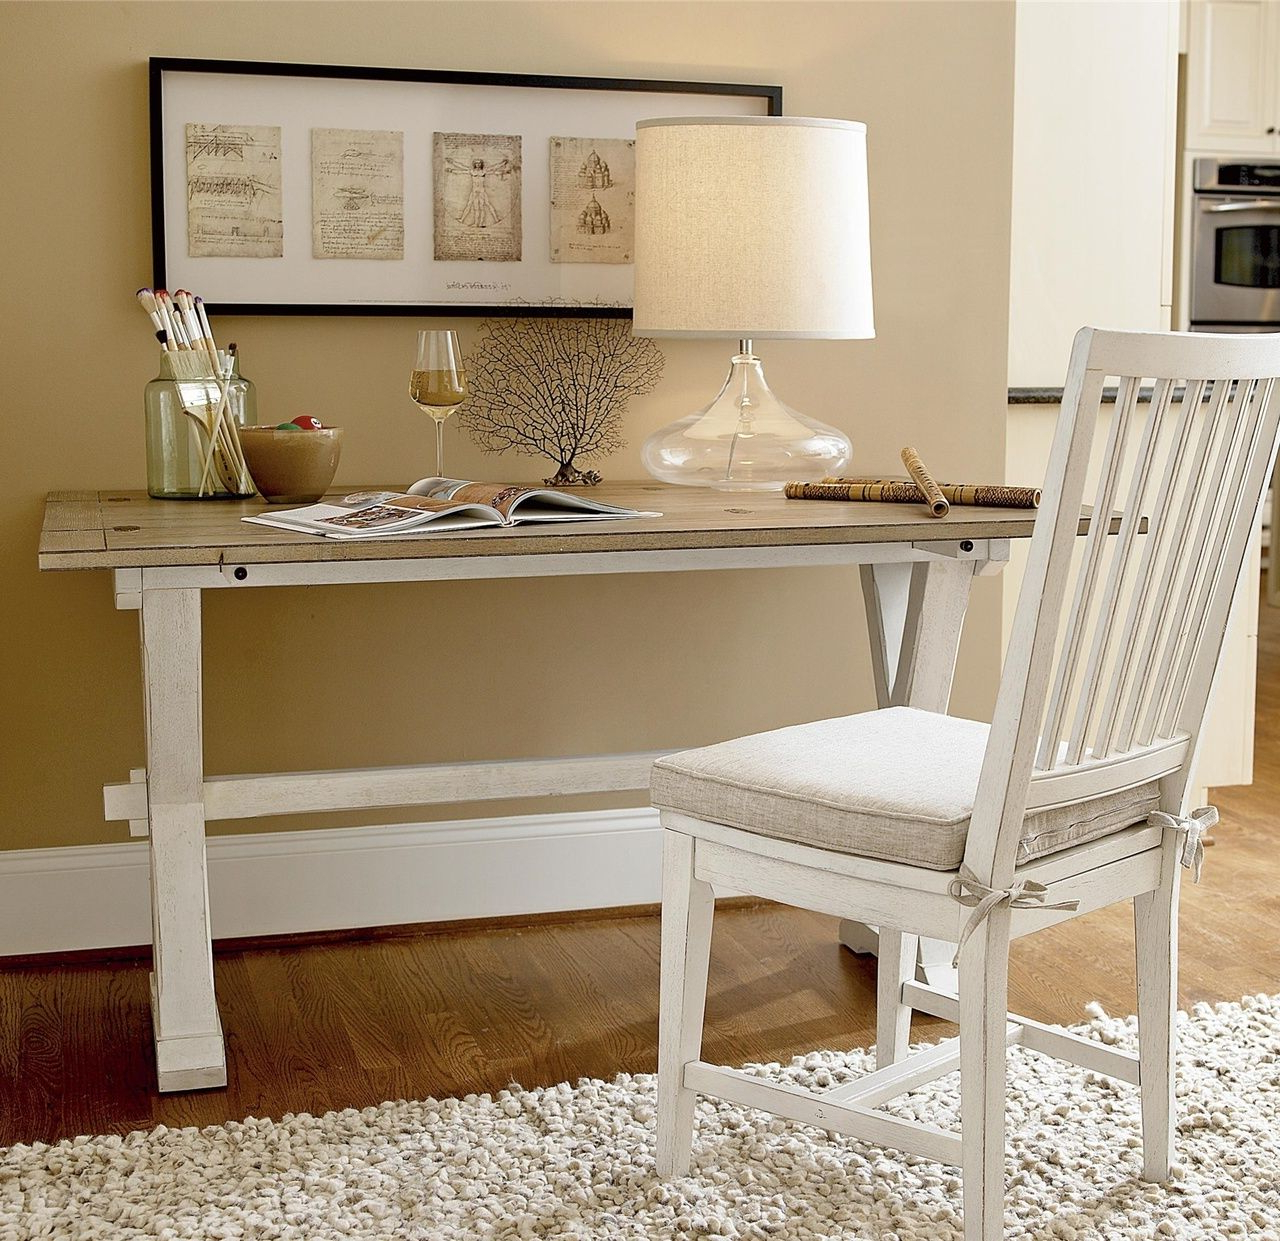 2018 Coastal Beach White Drop Leaf Kitchen Console Table (View 2 of 30)